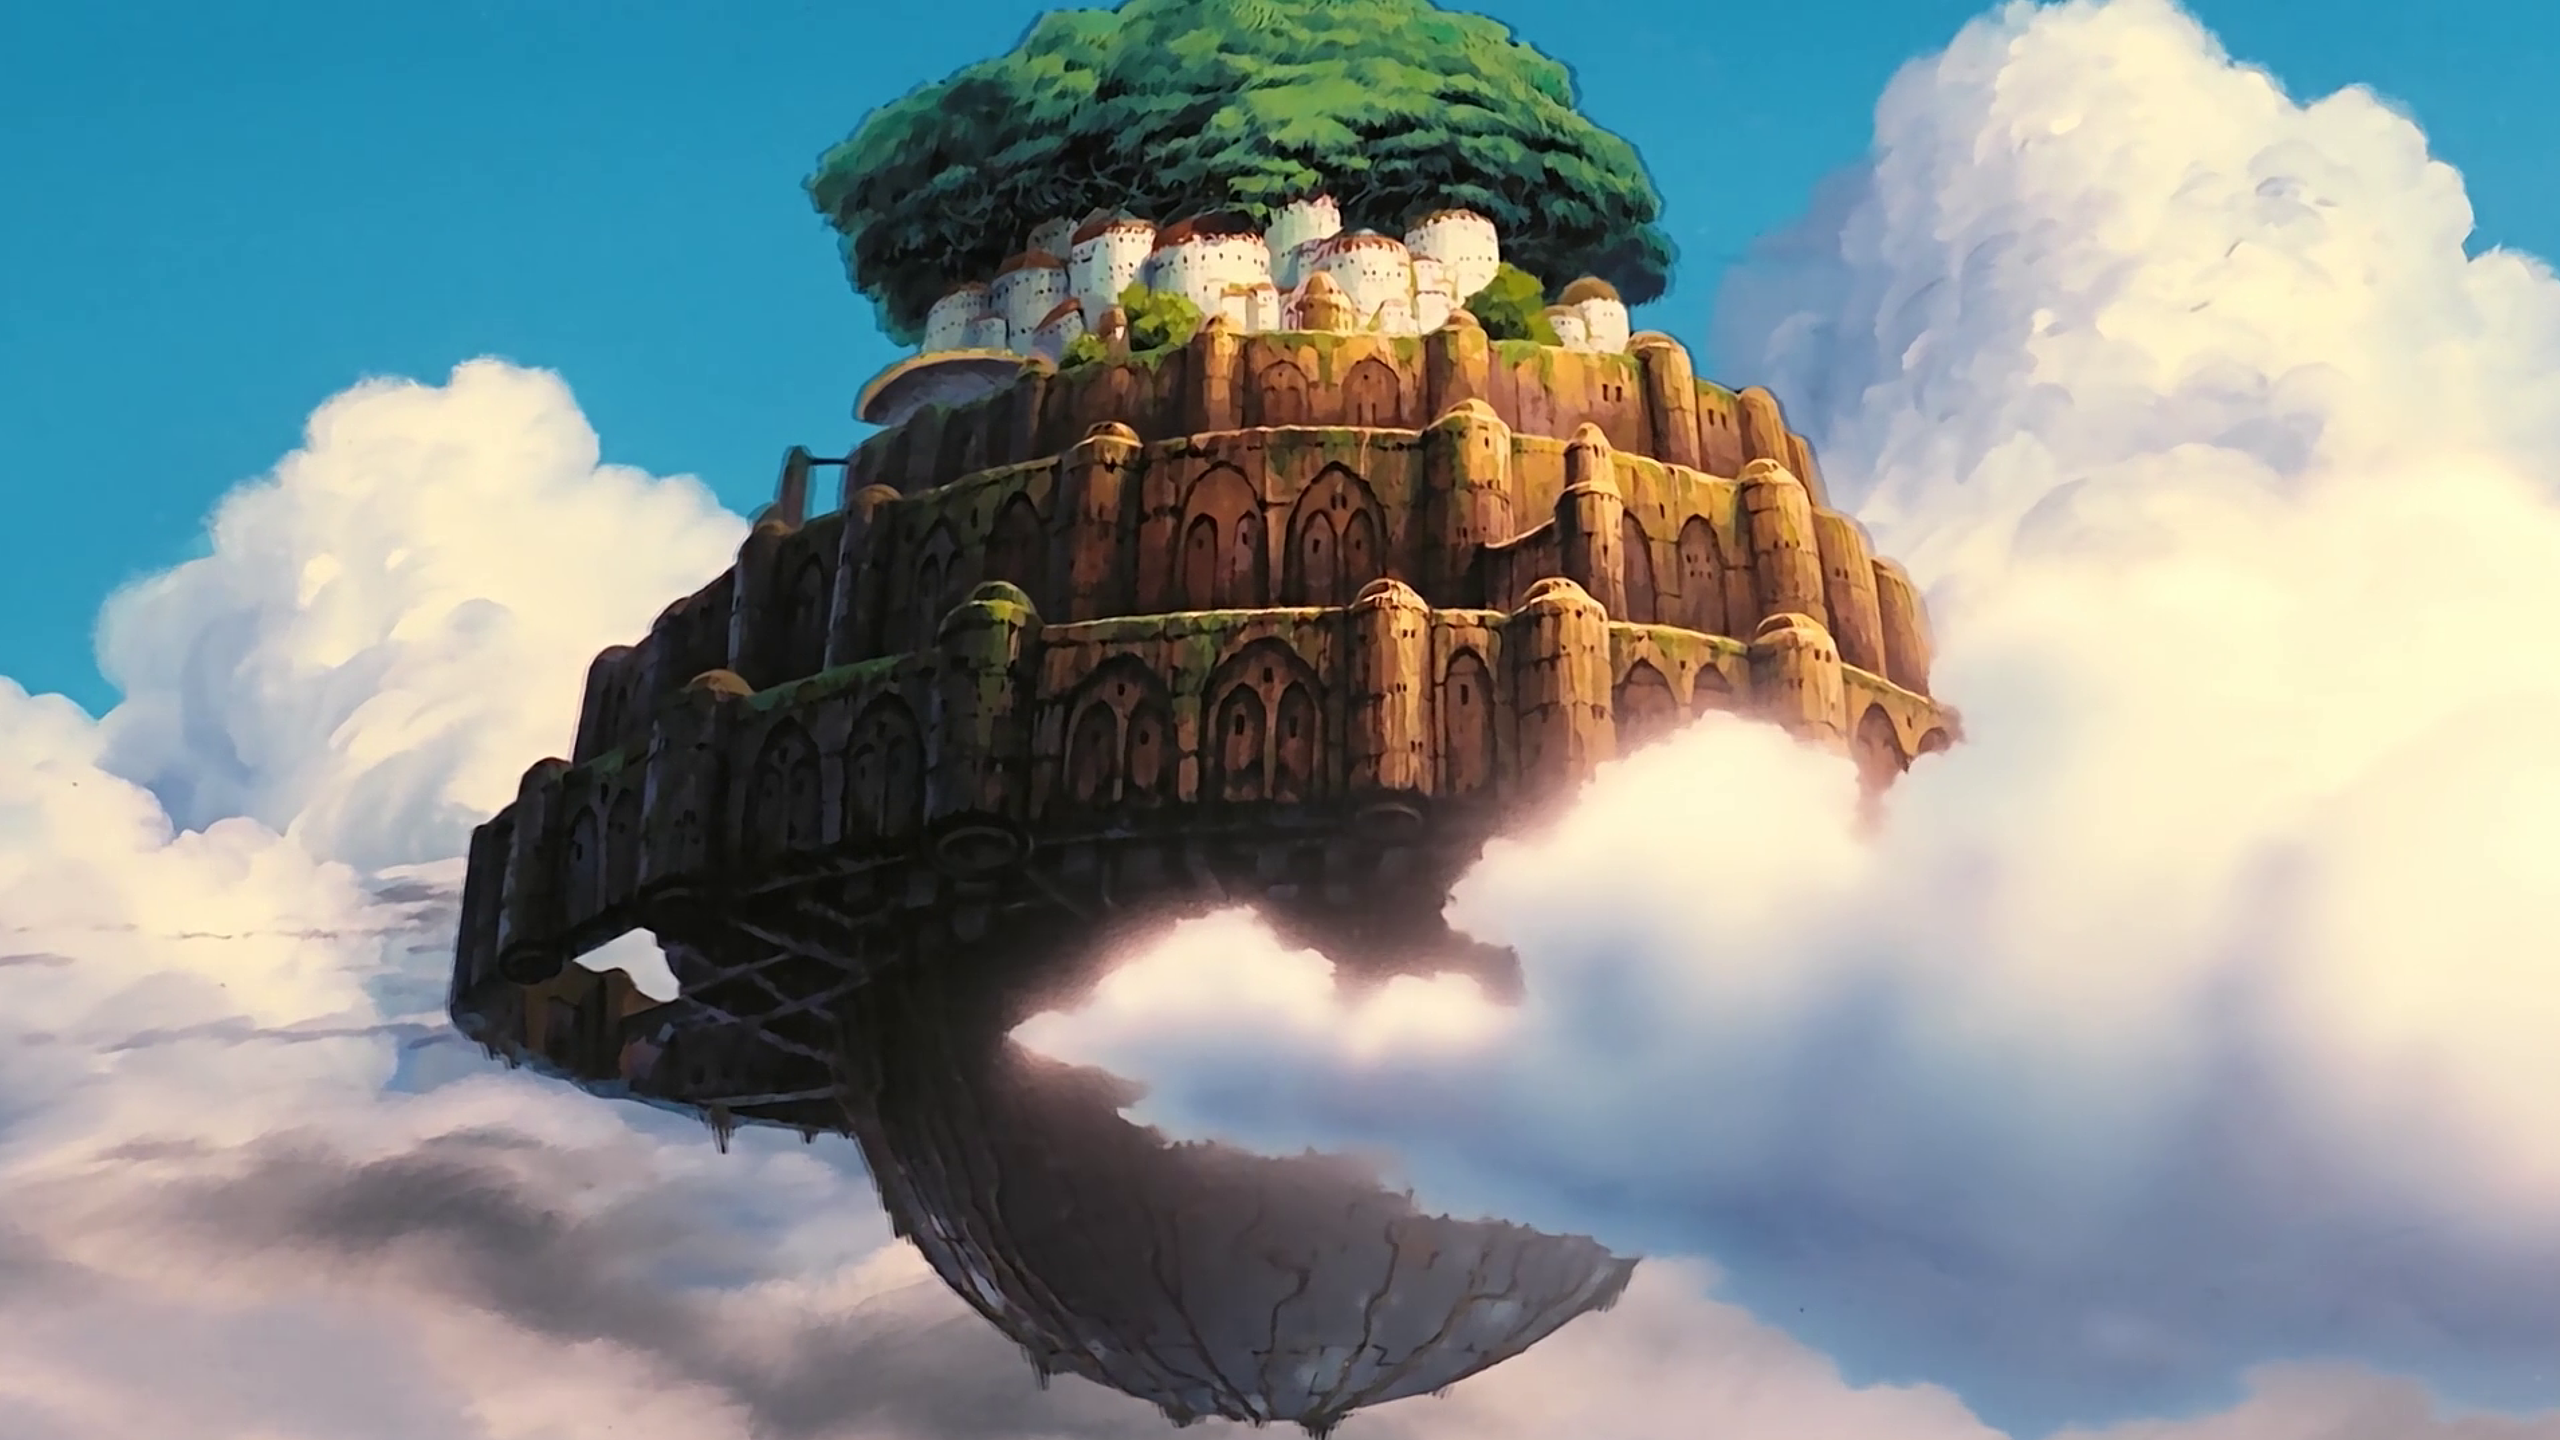 I Have A Huge Collection Of 1440p Studio Ghibli Wallpapers Studio Ghibli 1440p 434602 Hd Wallpaper Backgrounds Download